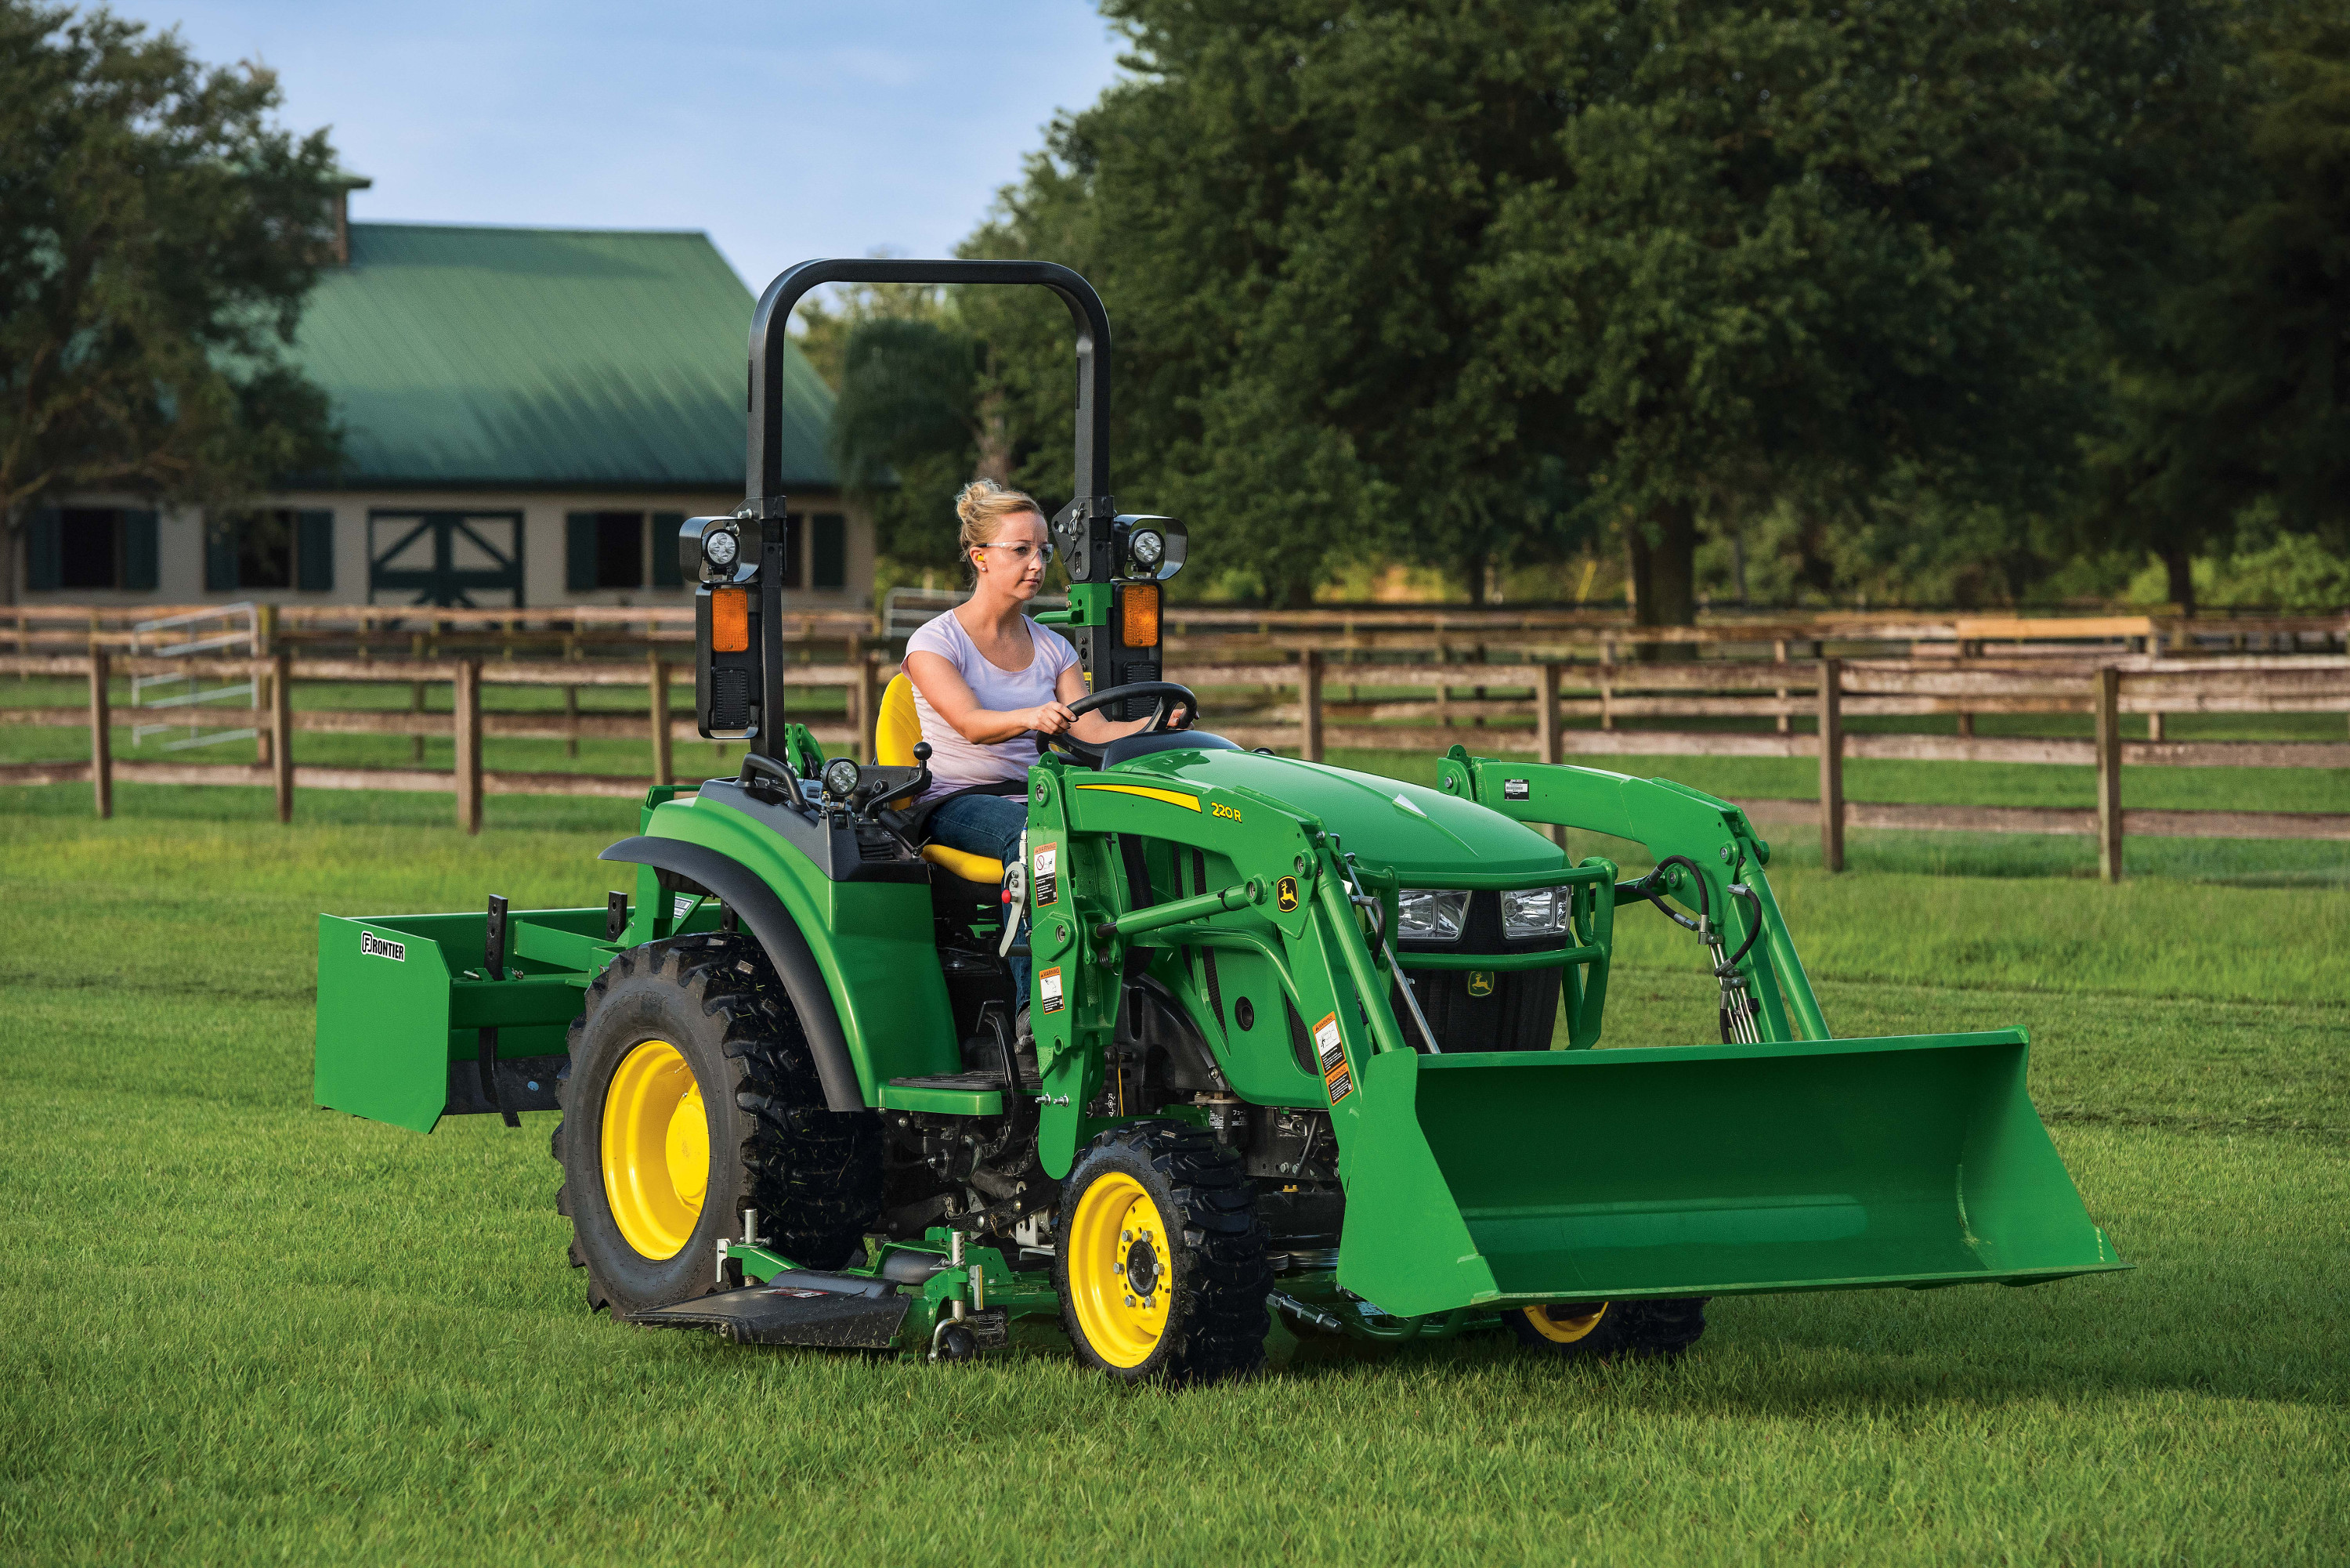 Woman using a John Deere 2R compact utility tractor on a farm